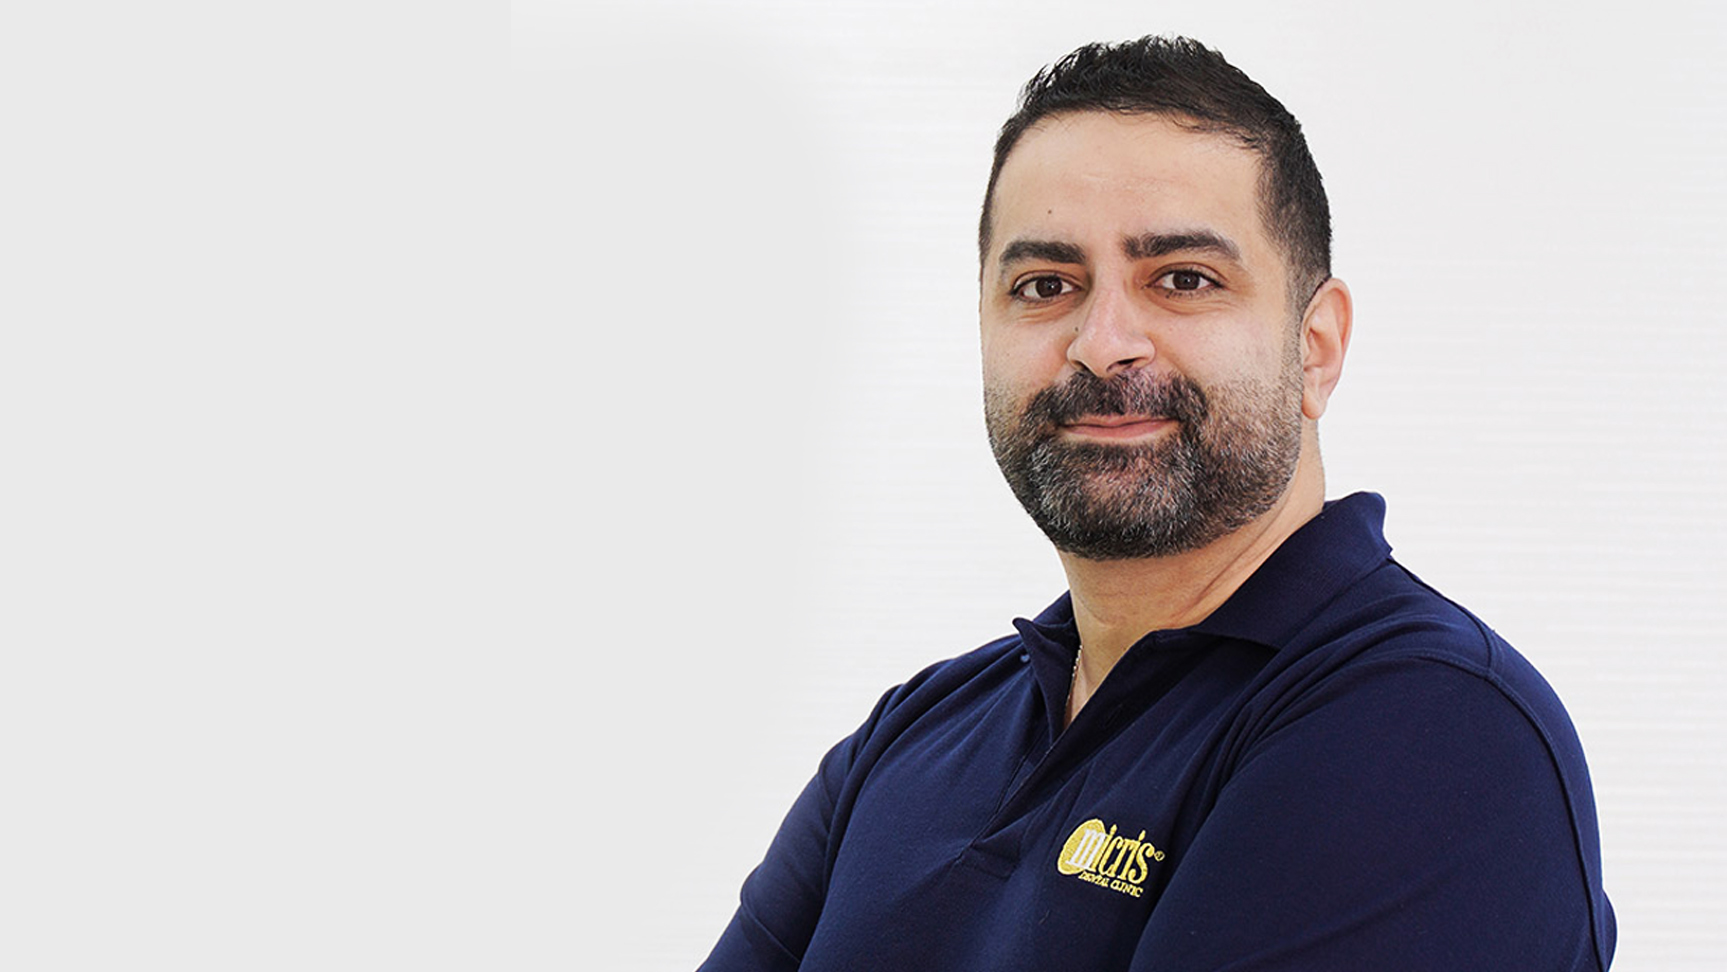 Dr Marwan Al-Obeidi speaks about DHA Implantology Privilege, COVID-19 and his experience in Dubai